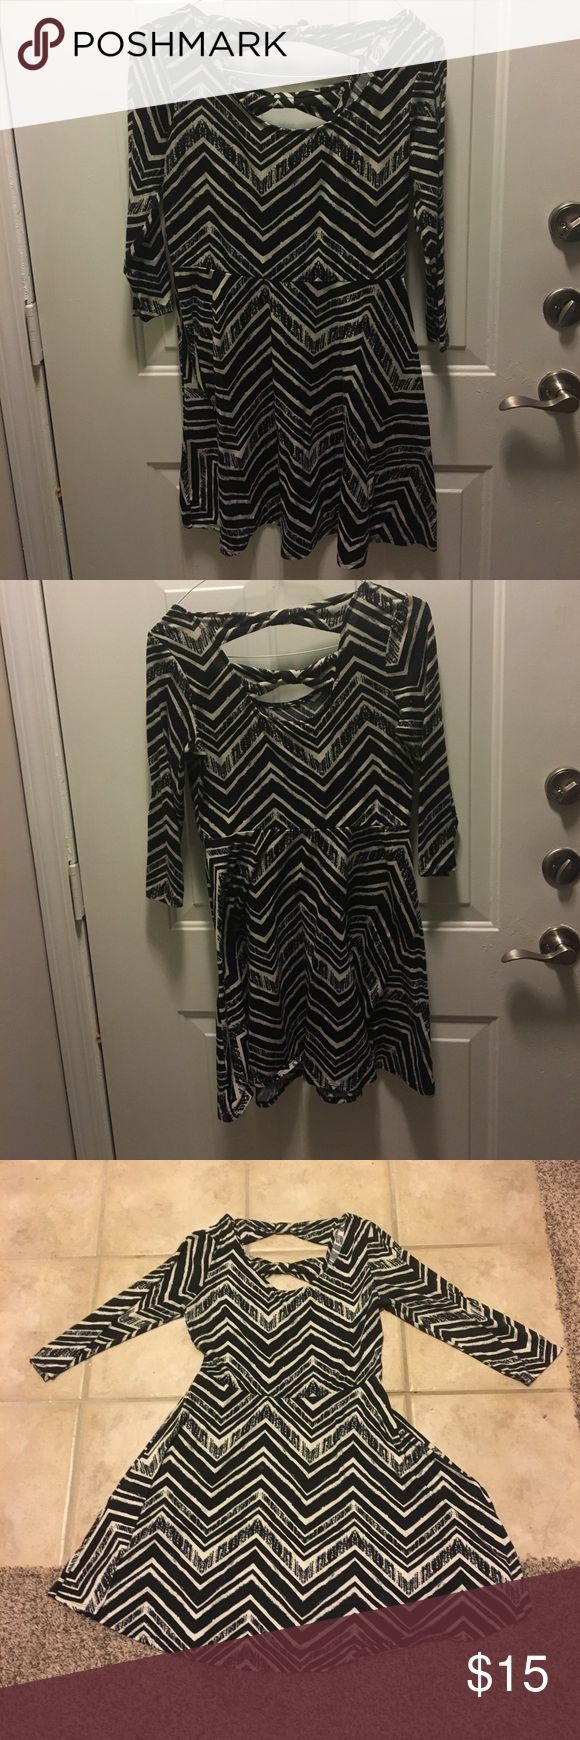 Xhilaration black and white dress! Fits M or L. Black and white chevron pattern. Back has openings that are very flattering. Summer night or winter dress. Good for all seasons! Xhilaration Dresses Mini